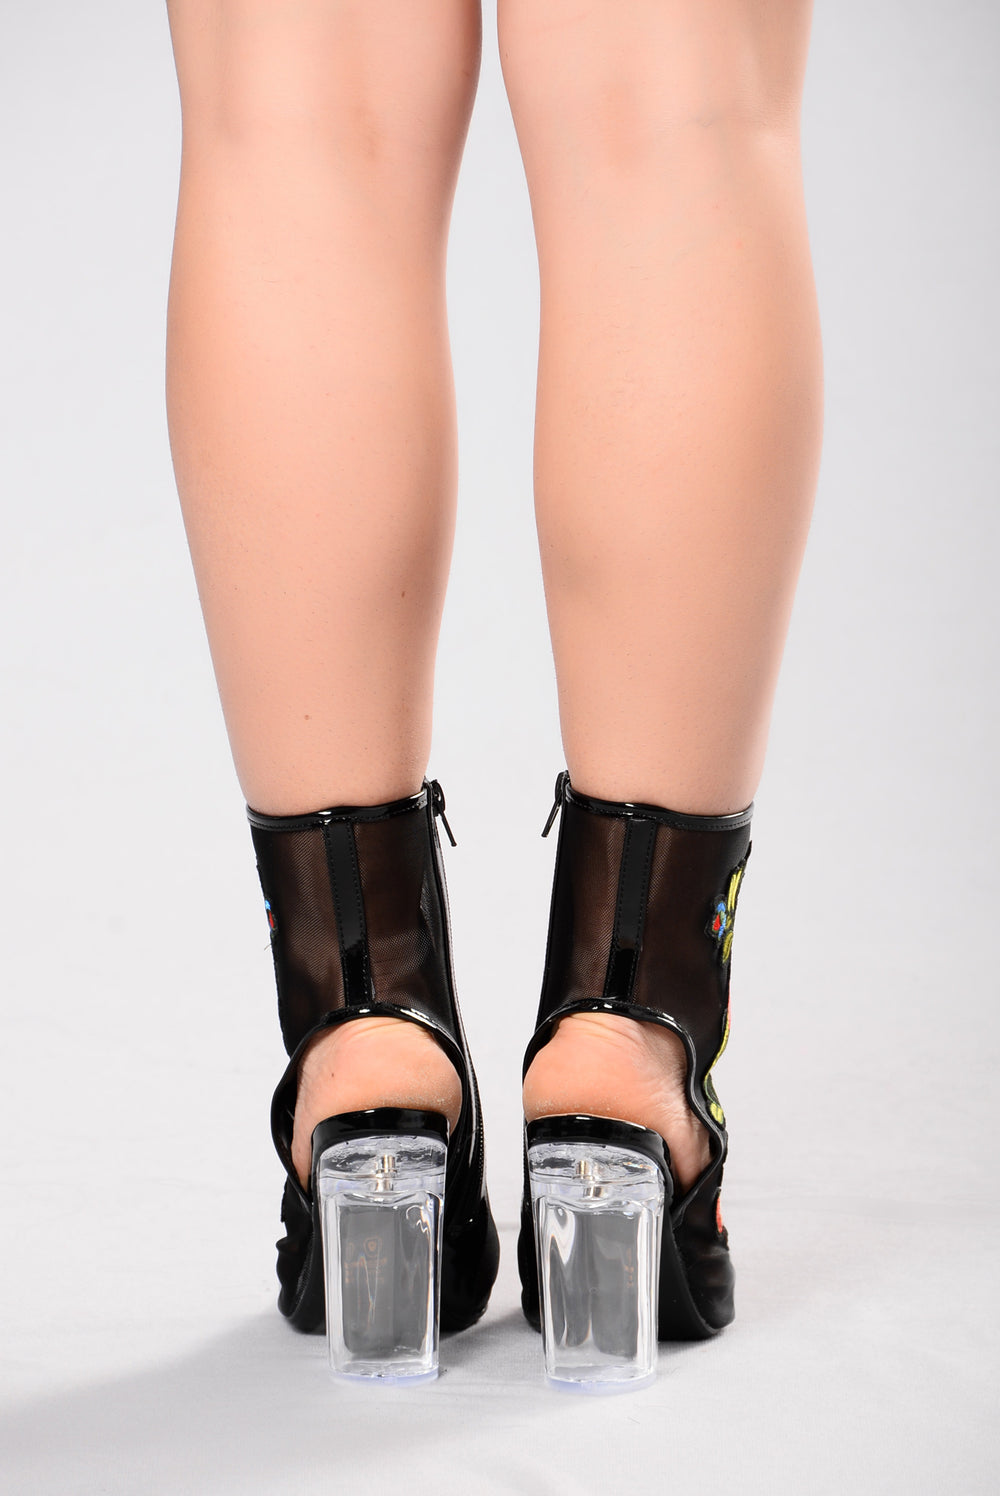 Garden Clear Heel - Black